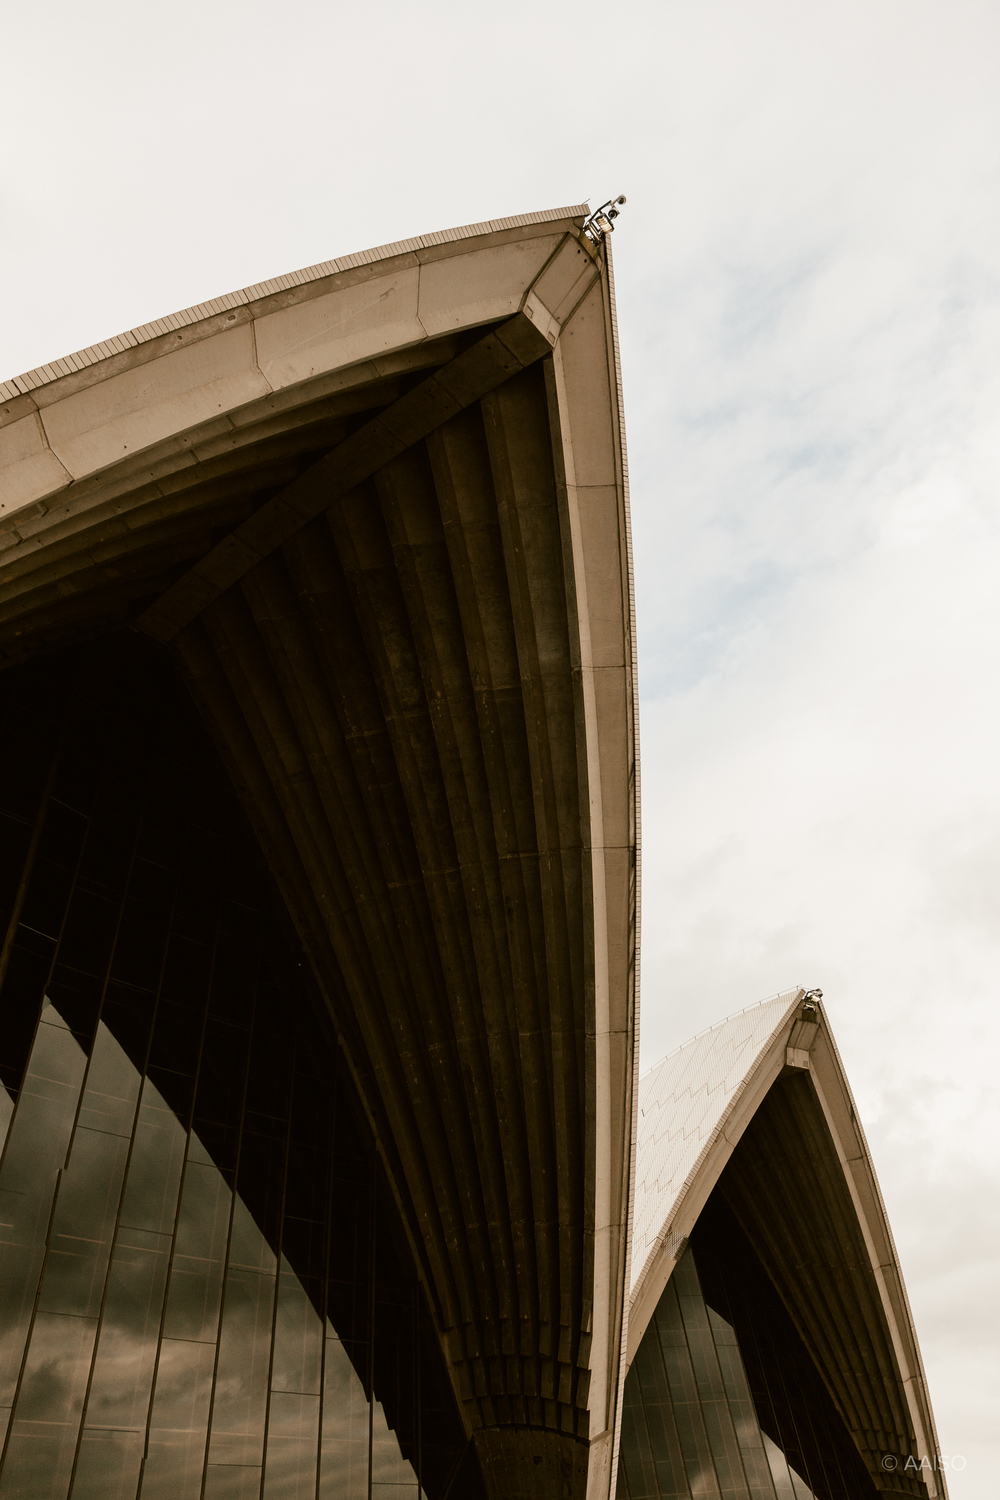 The characteristic shapes of the Sydney Opera House